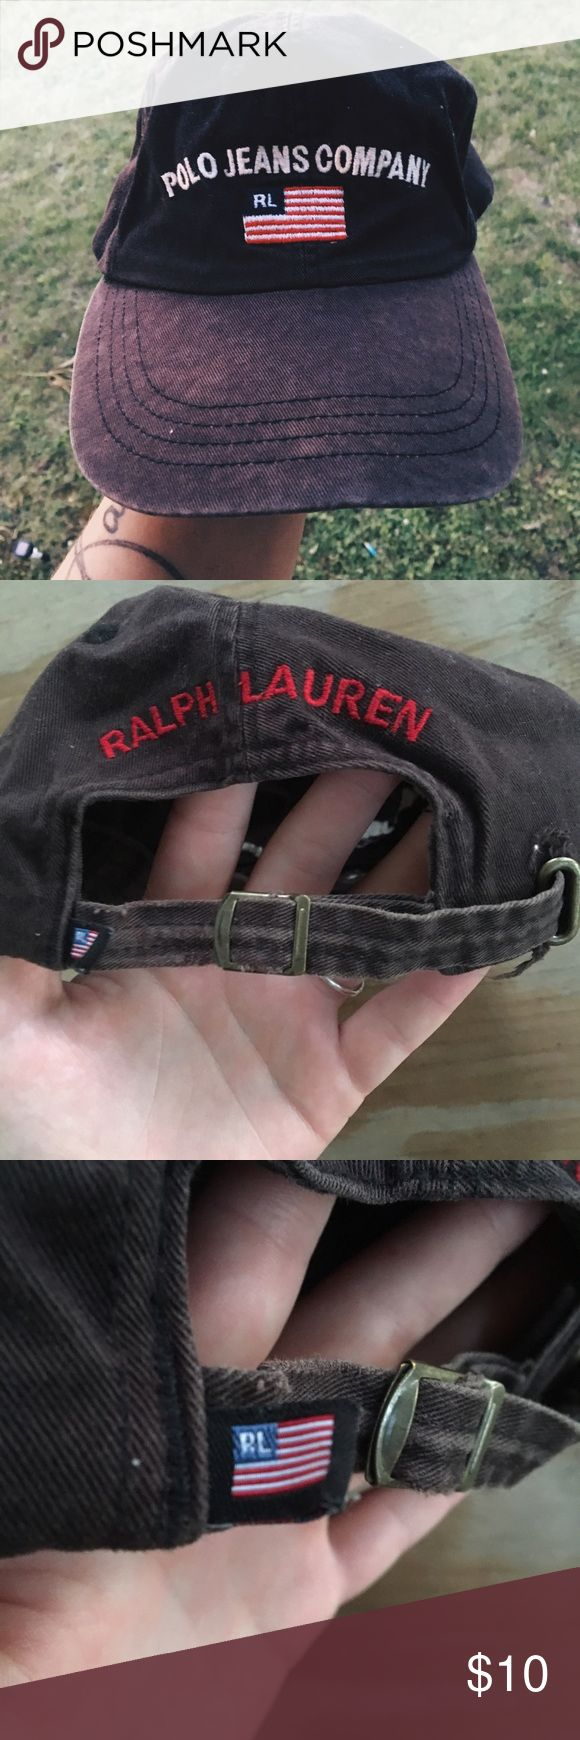 ❤️Vintage Polo Hat Special vintage Polo by Ralph Lauren distressed baseball cap type of hat. Some wear to It but definitely not enough to stop wearing it out or for your collection  Polo by Ralph Lauren Accessories Hats